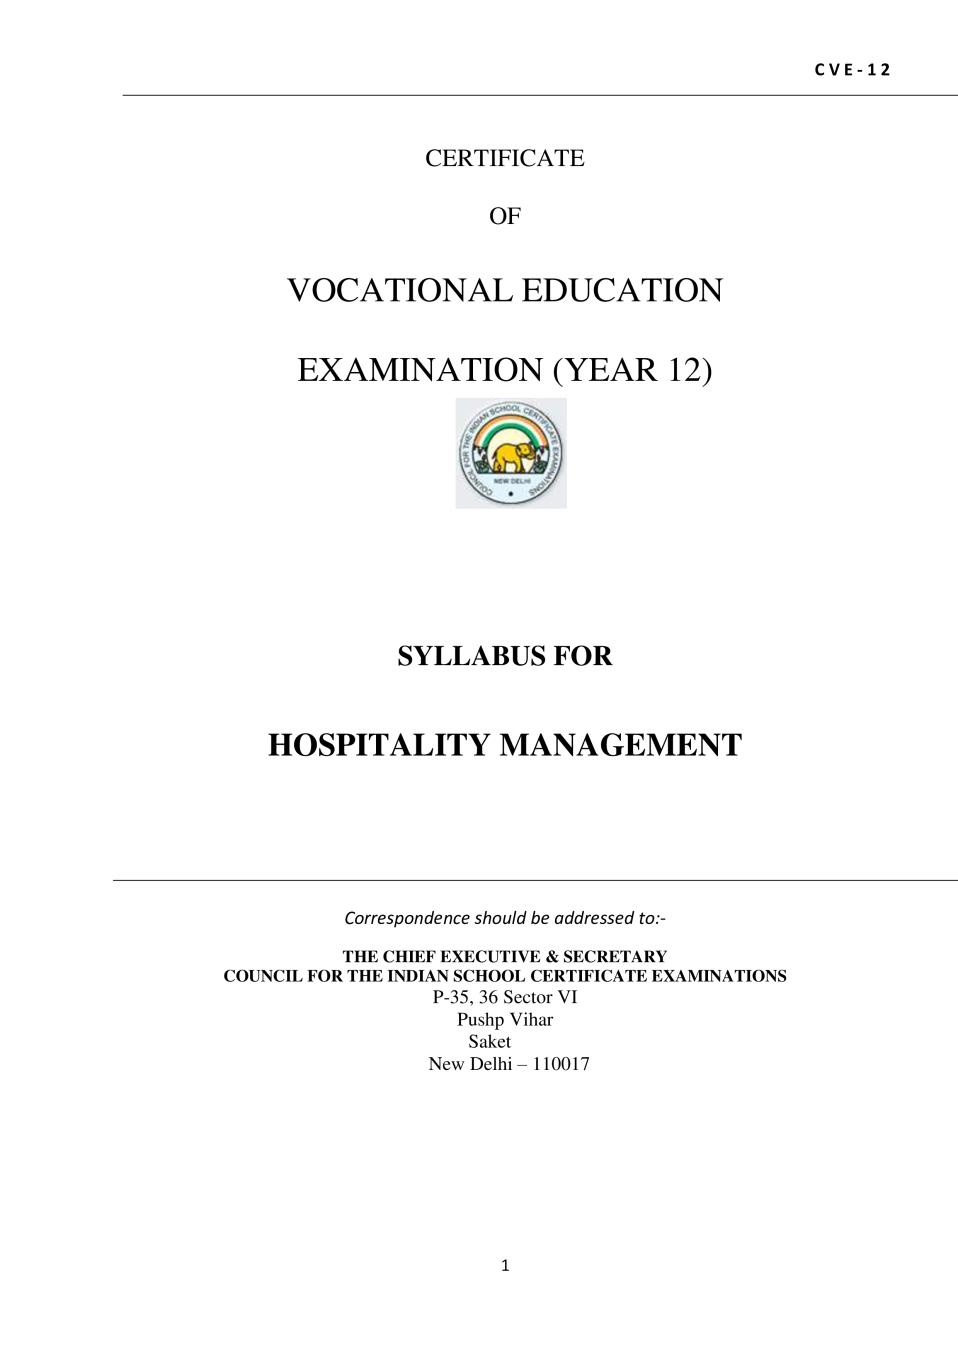 ISC Class 12 Hospitality Management Syllabus (Vocational Course) - Page 1